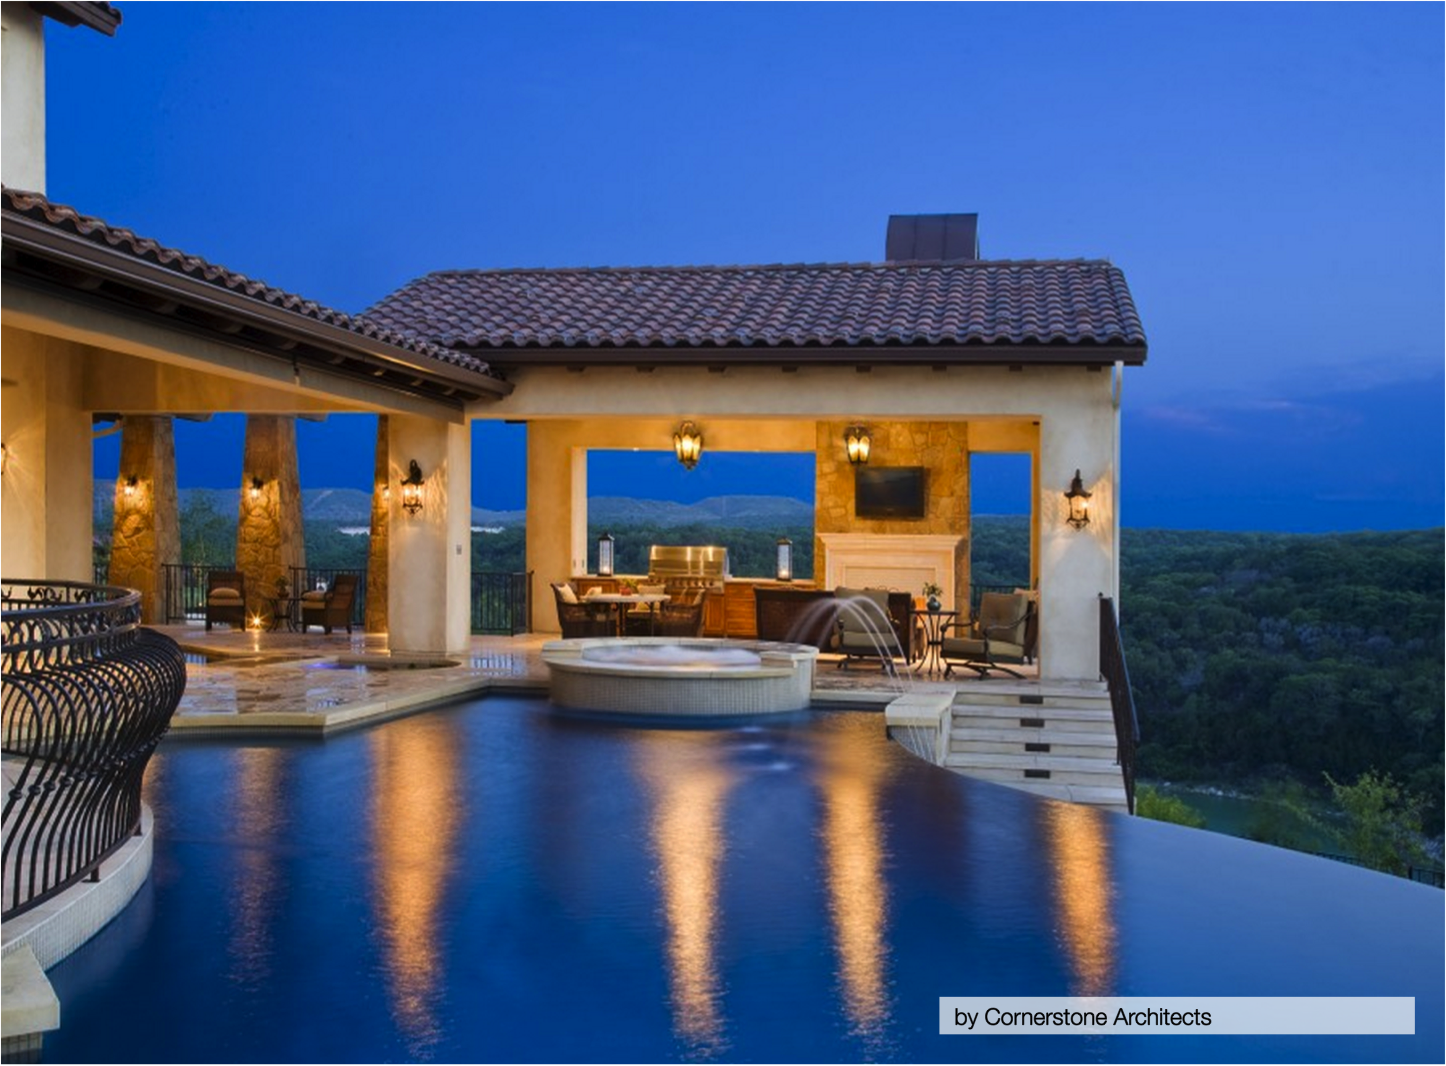 10 of the most stunning infinity pools homespree. Black Bedroom Furniture Sets. Home Design Ideas